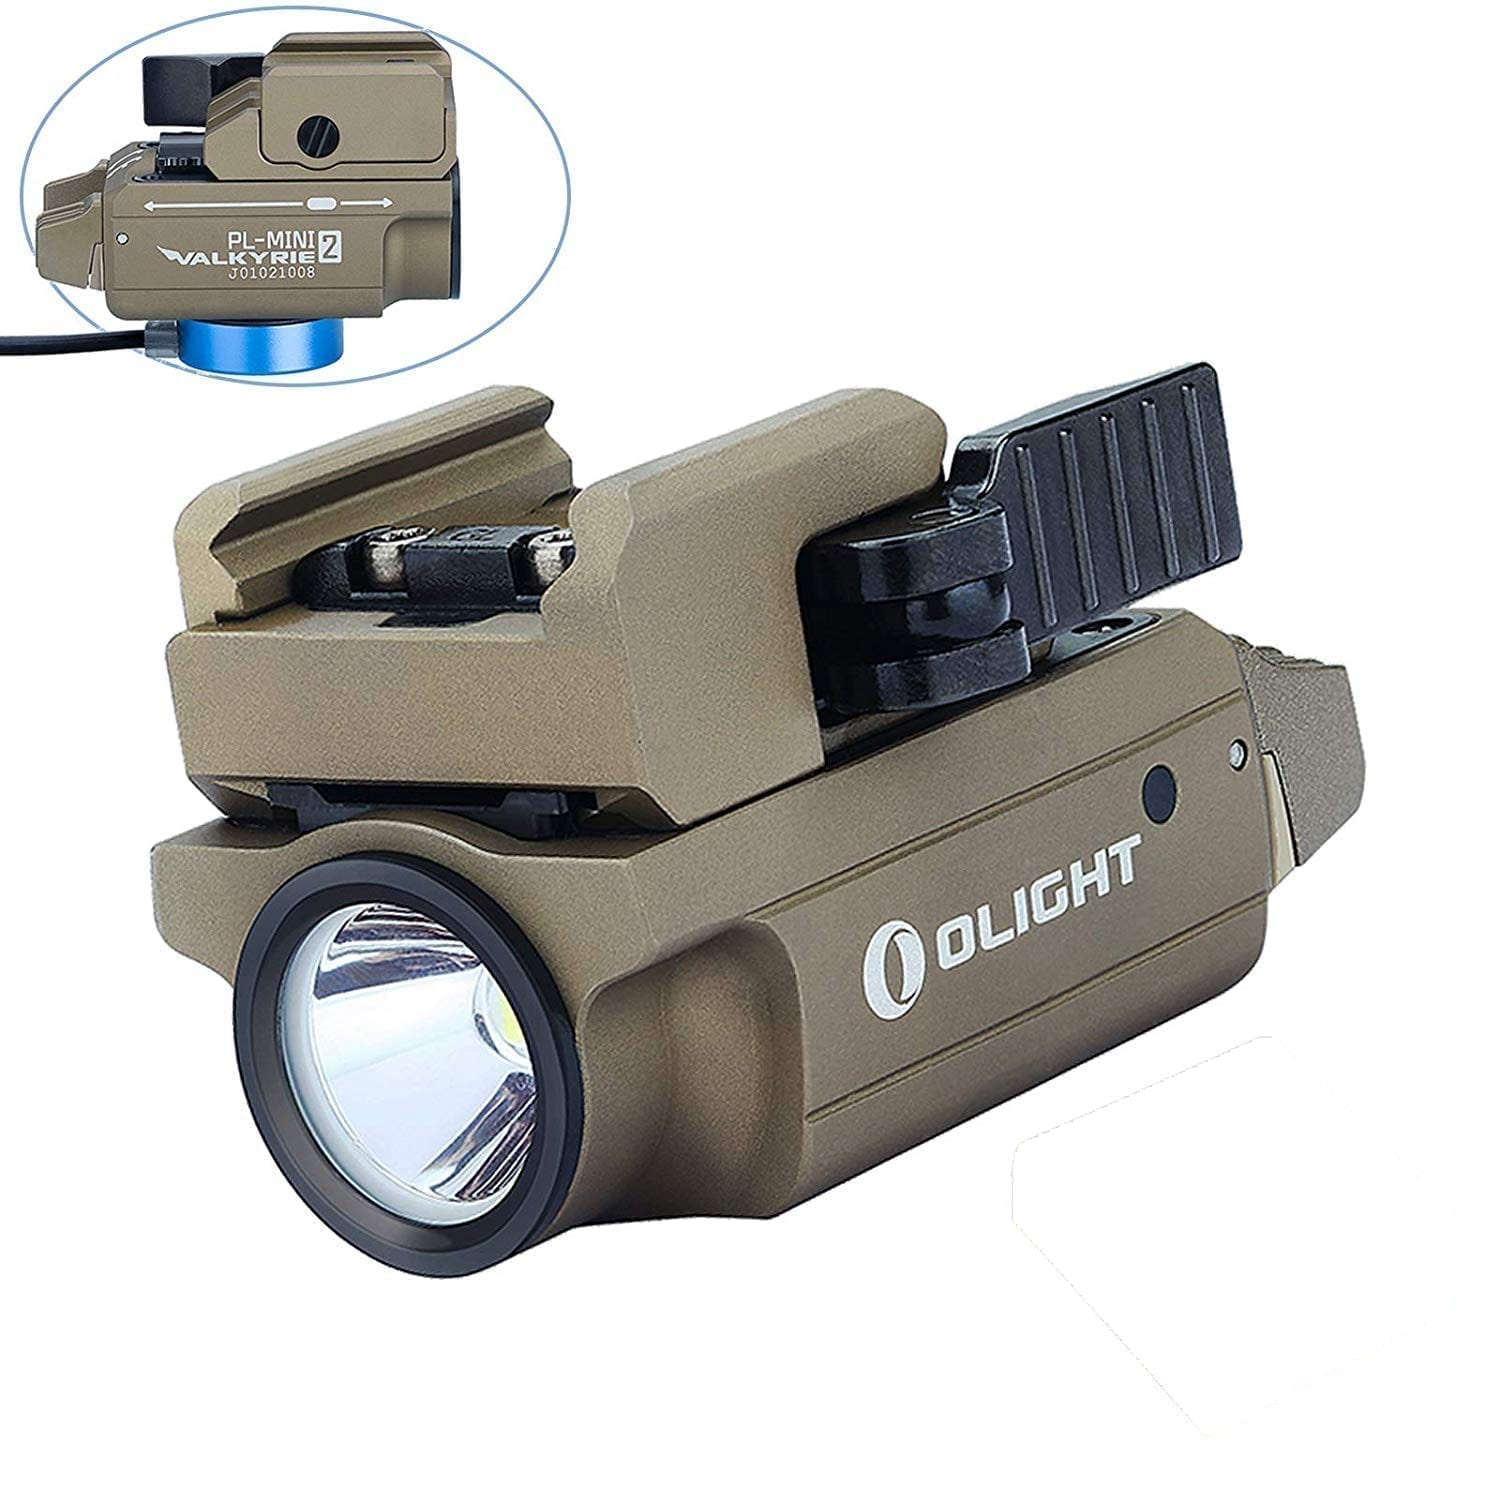 Olight PL-Mini 2 Valkyrie 600 Lumens Rechargeable Compact Weapon Light (Desert Tan)